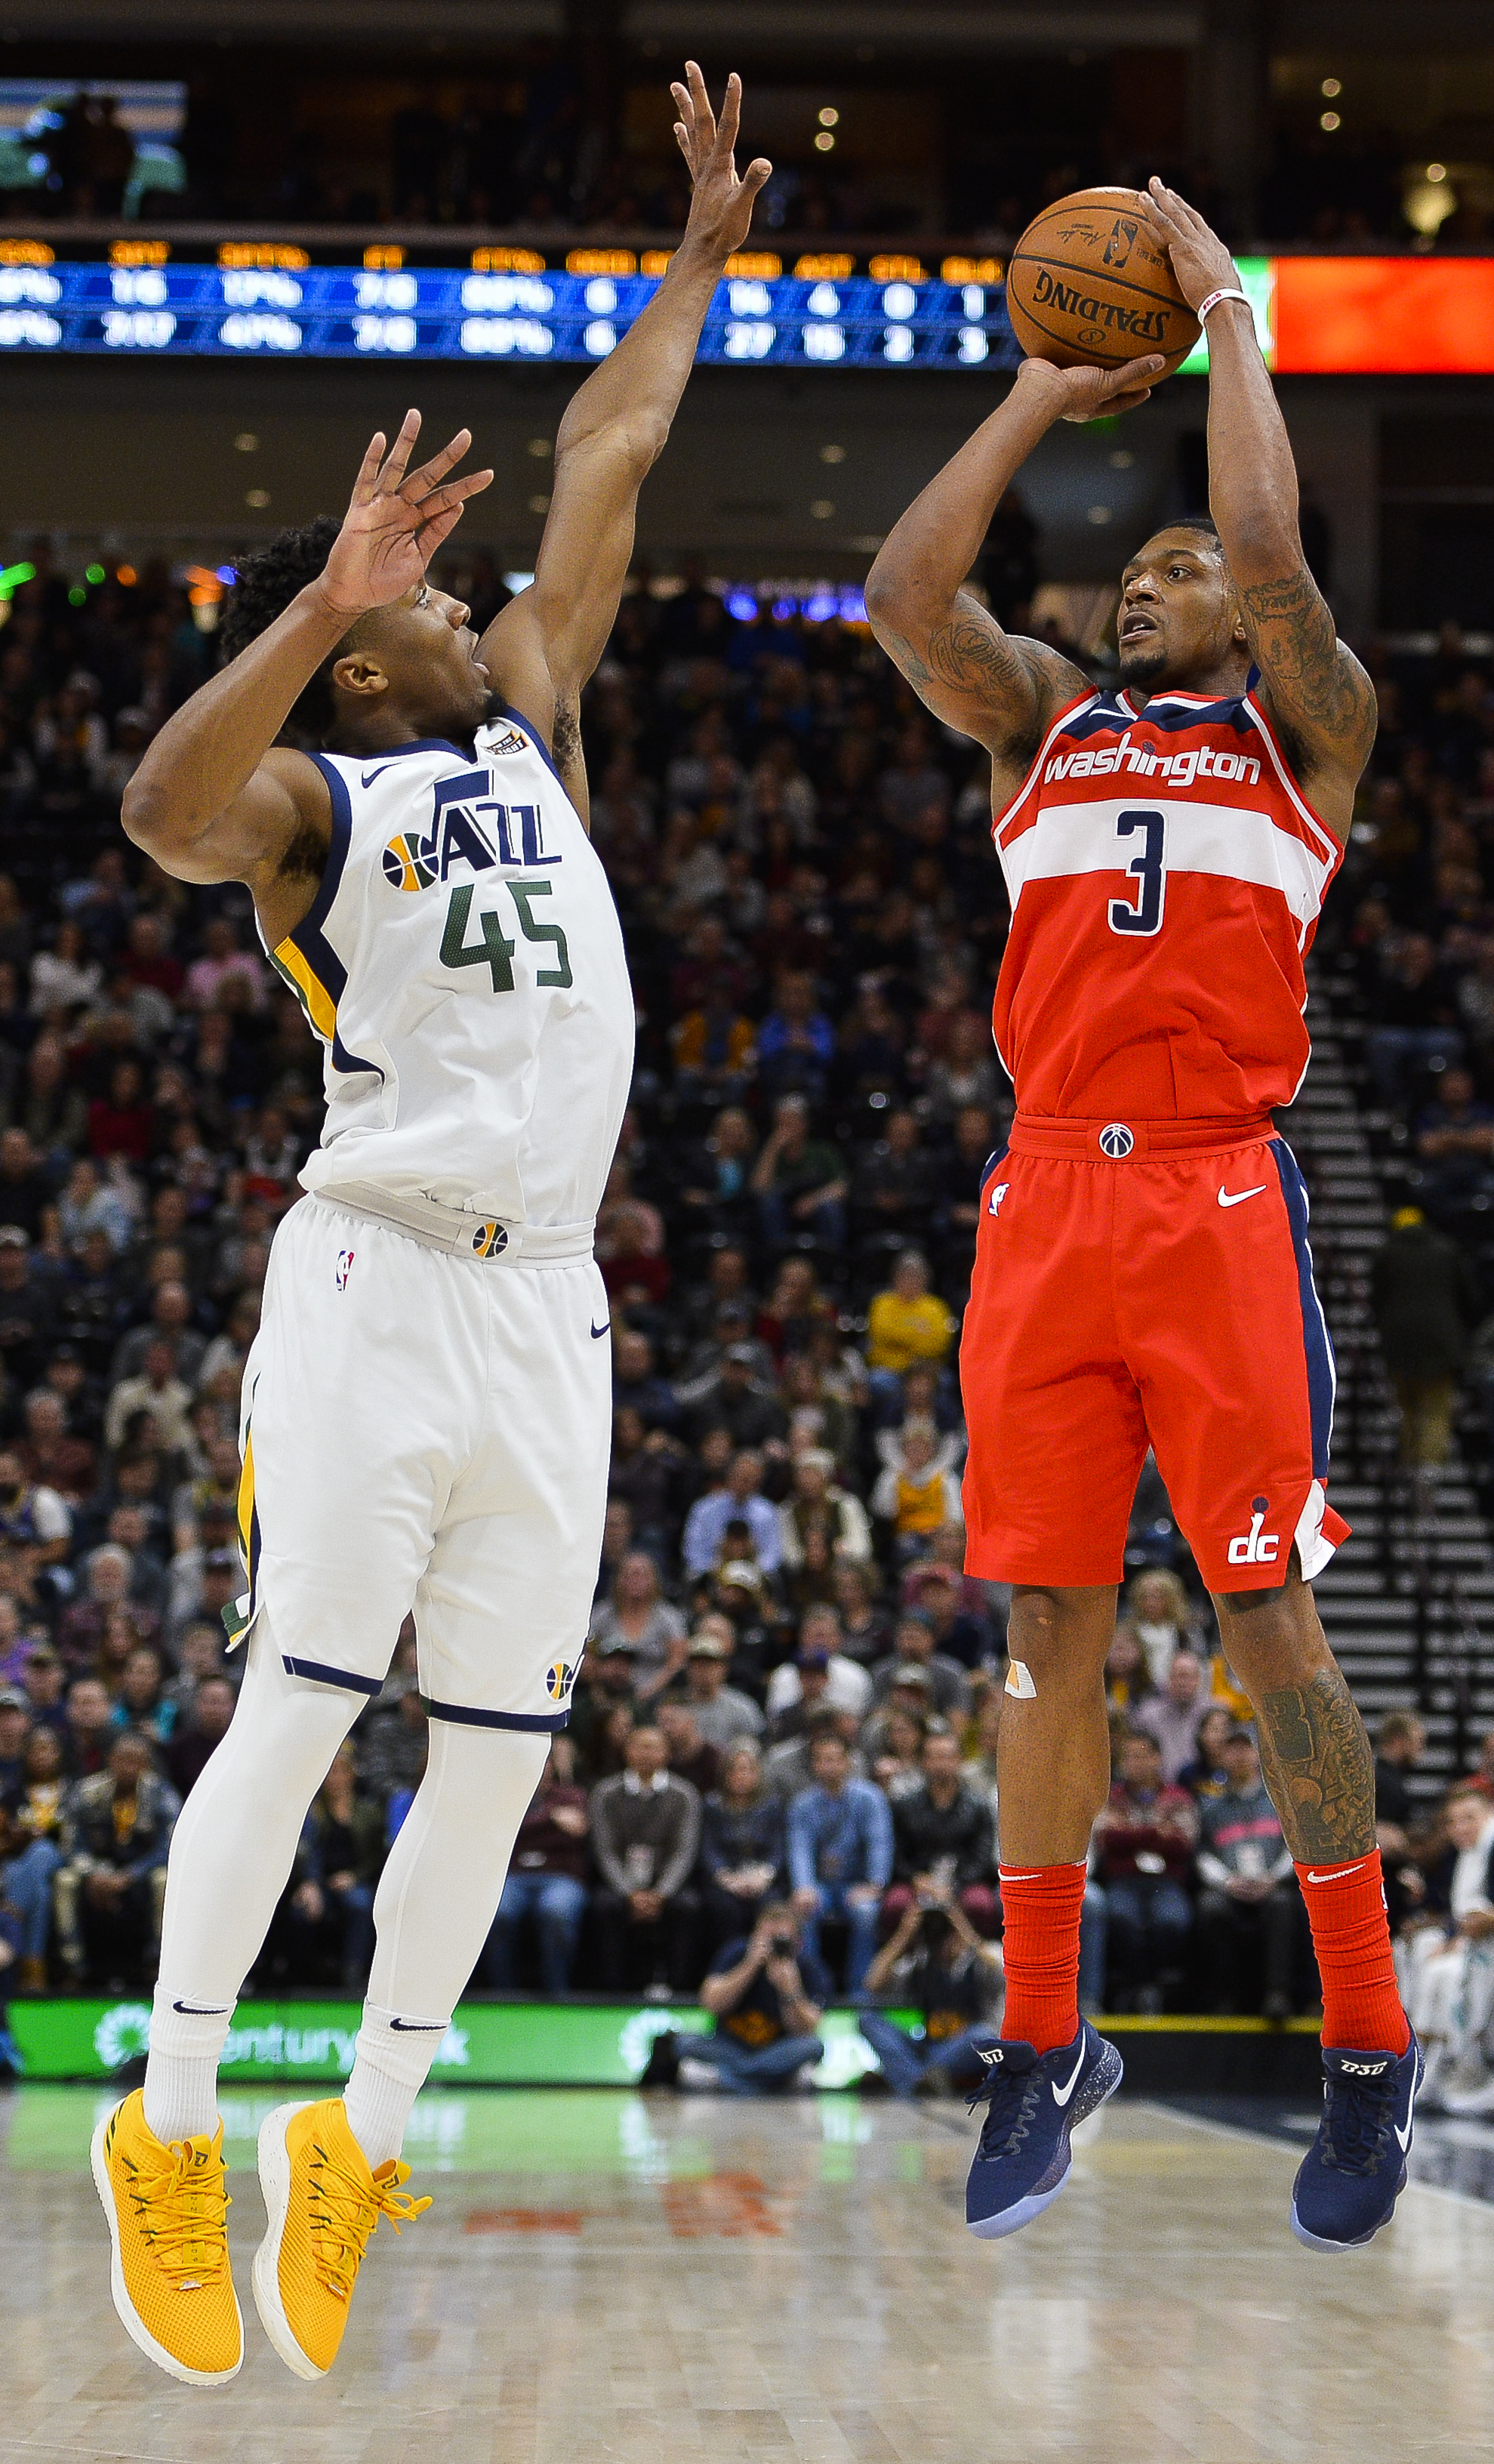 Utah Jazz guard Donovan Mitchell (45) attempts to block Washington Wizards guard Bradley Beal (3) in the first half of an NBA basketball game Monday, Dec. 4, 2017, in Salt Lake City. (AP Photo/Alex Goodlett)